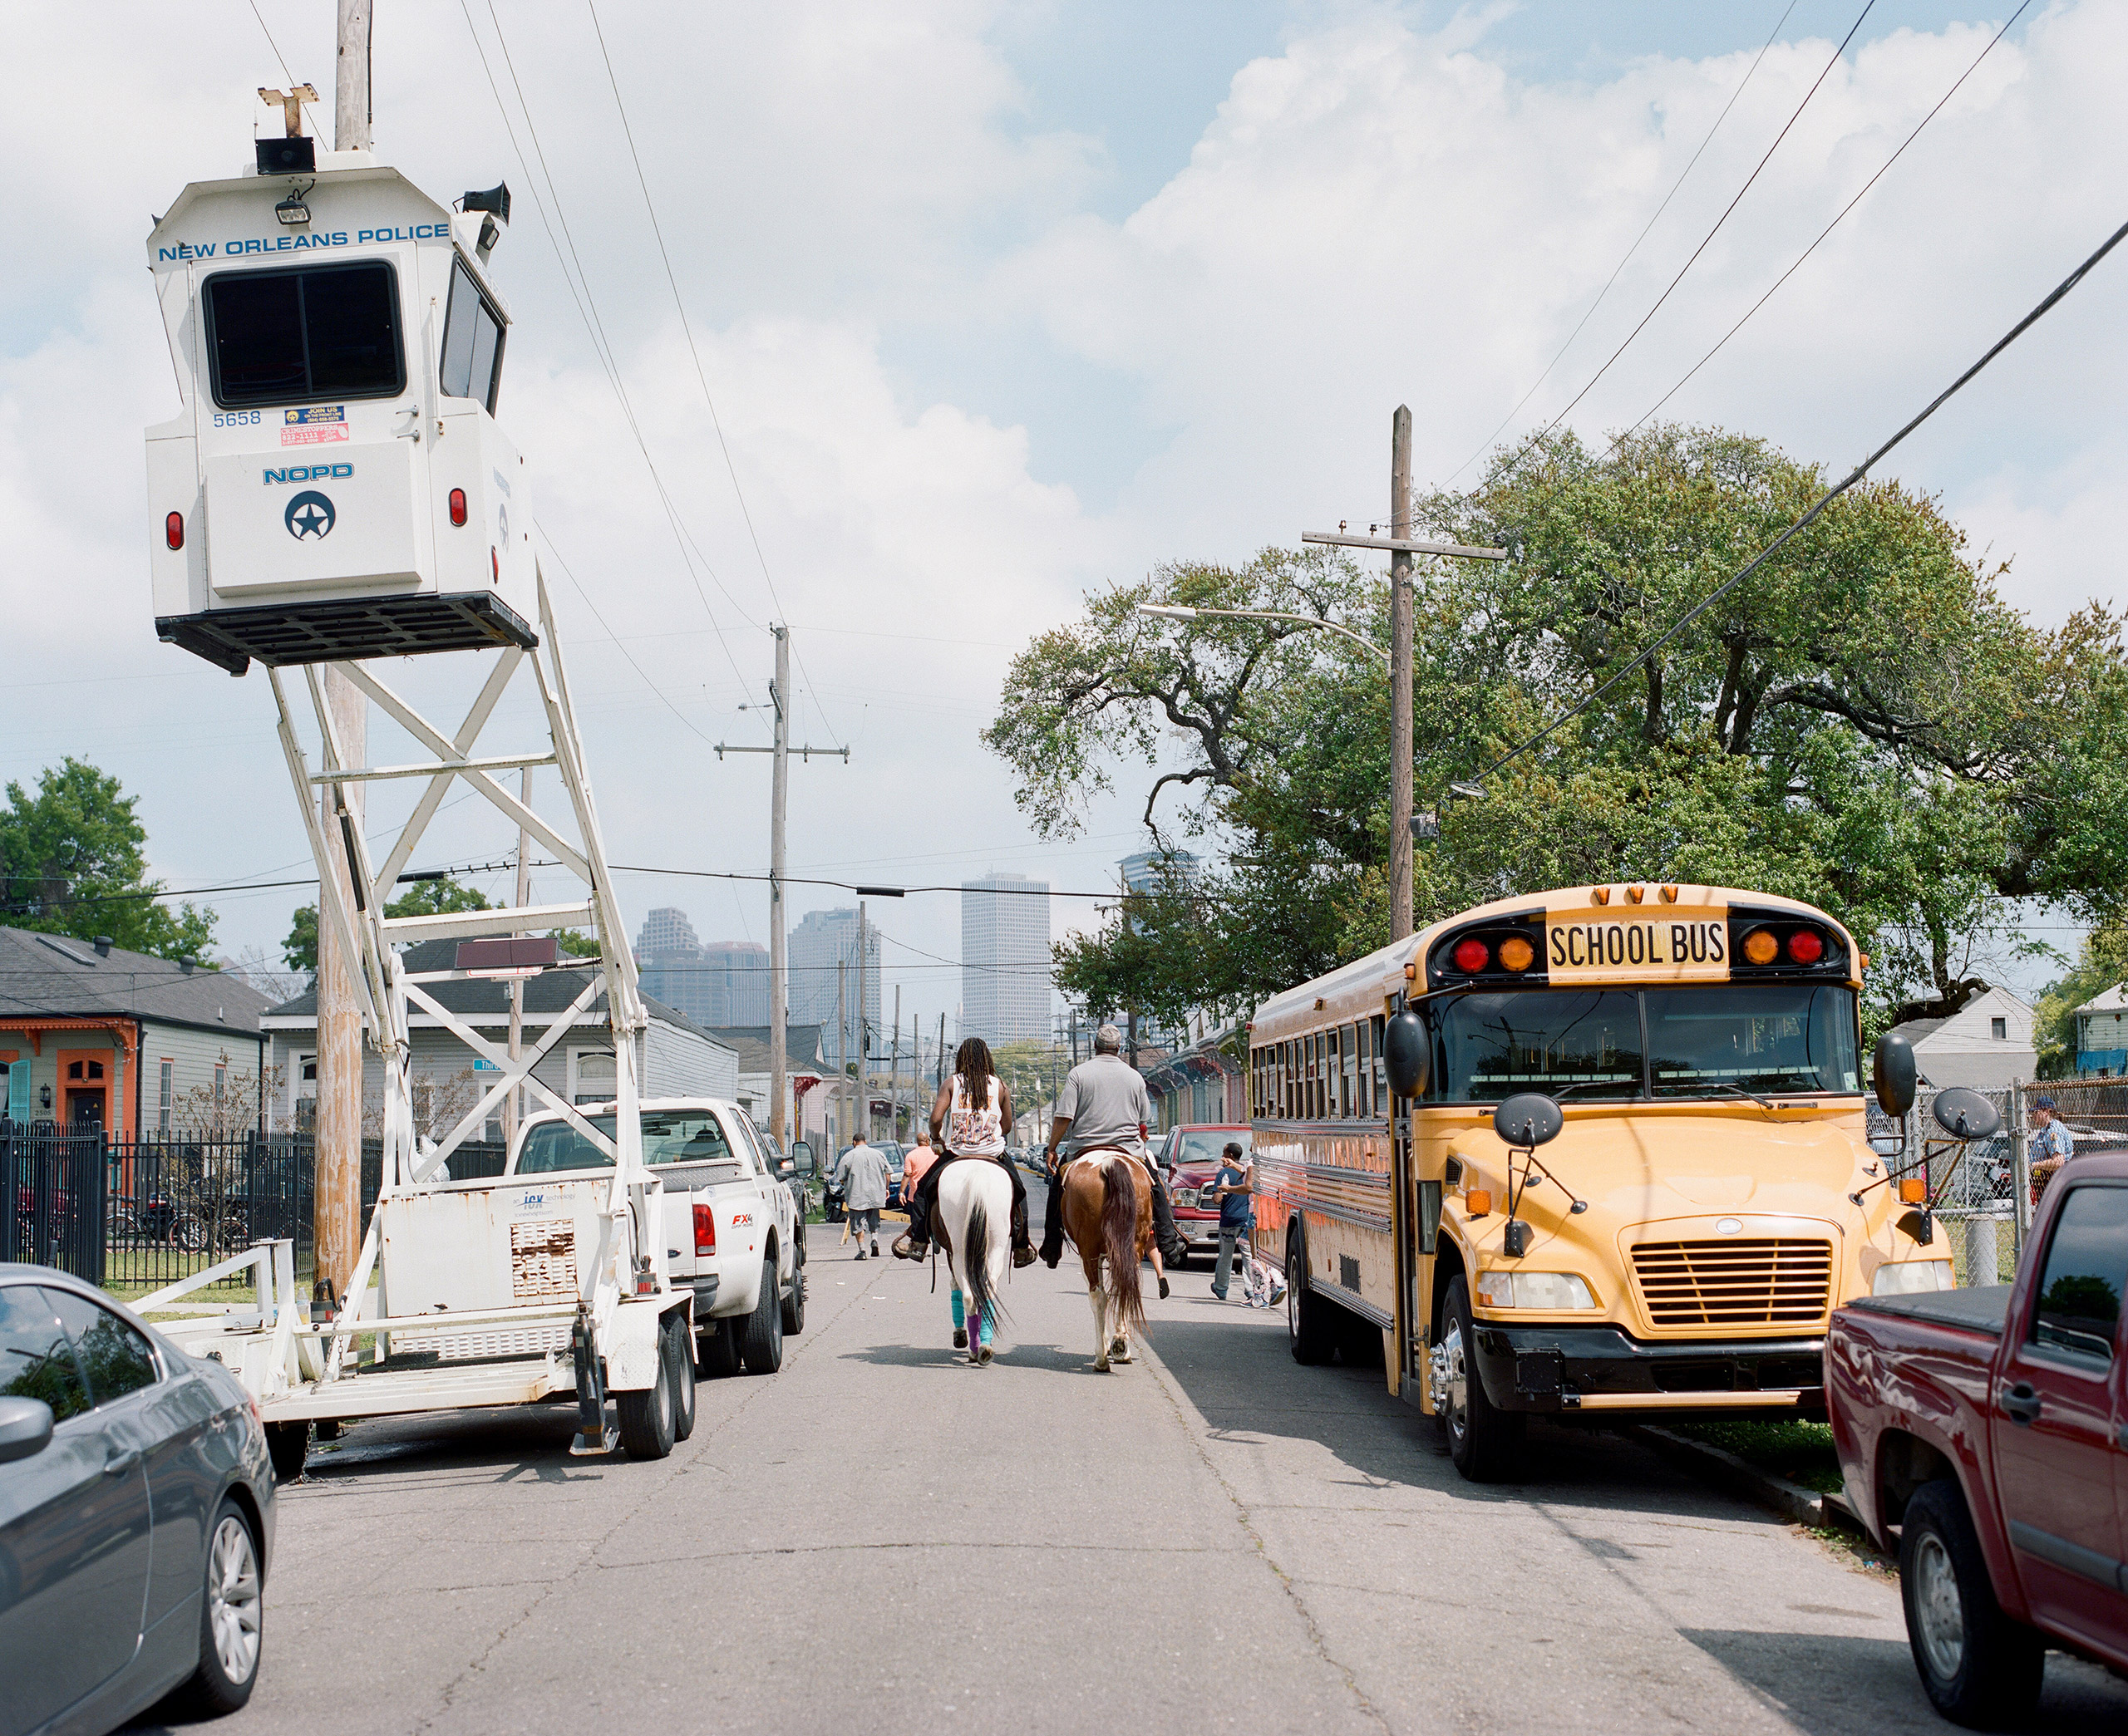 Devence rides through the streets of New Orleans in search of the Uptown Super Sunday Second Line. 2017